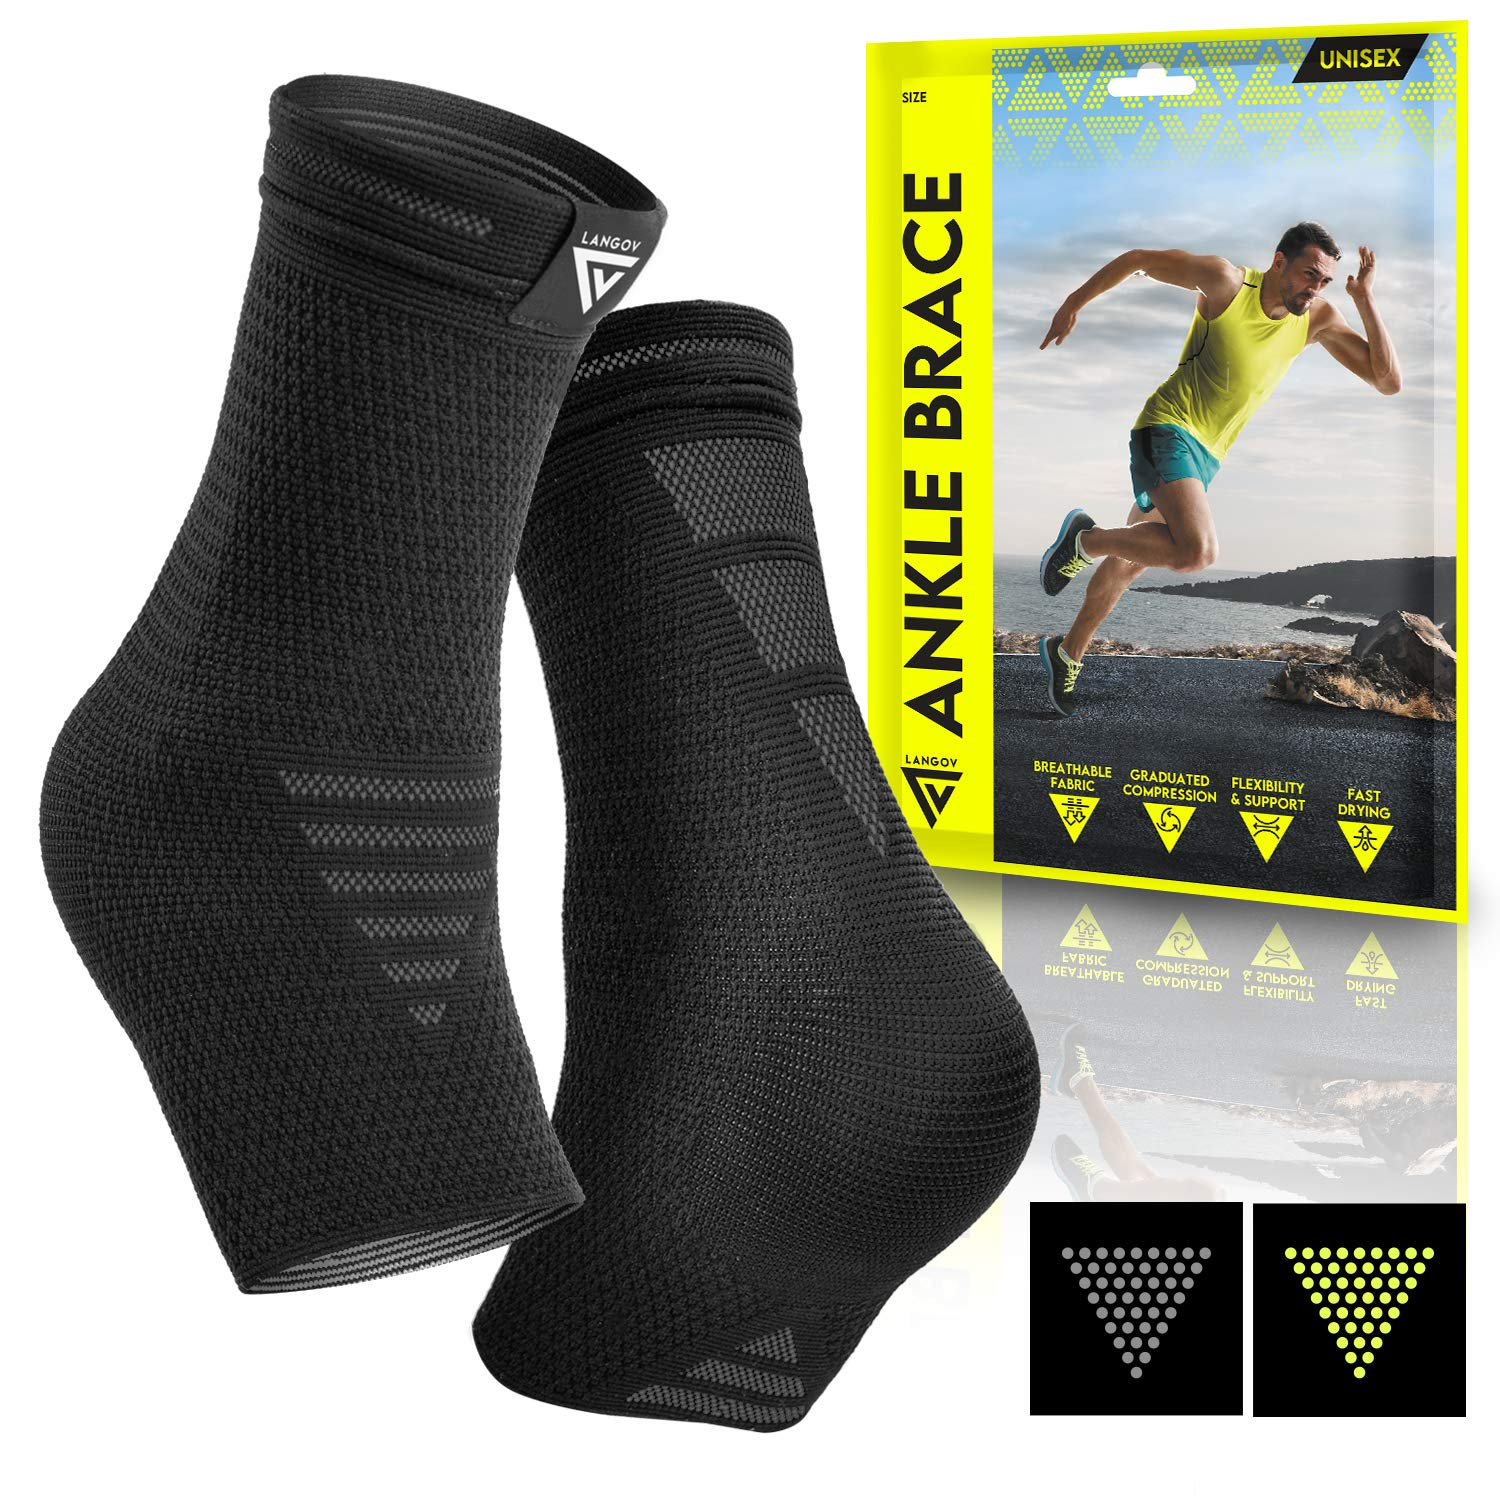 Langov Ankle Brace Support for Men & Women (Pair), Best Compression Sleeve Socks for Your Foot or Sprained Ankle, Helps With Achilles Tendonitis and Injury Recovery, swelling or heel pain, nano socks: Industrial & Scientific